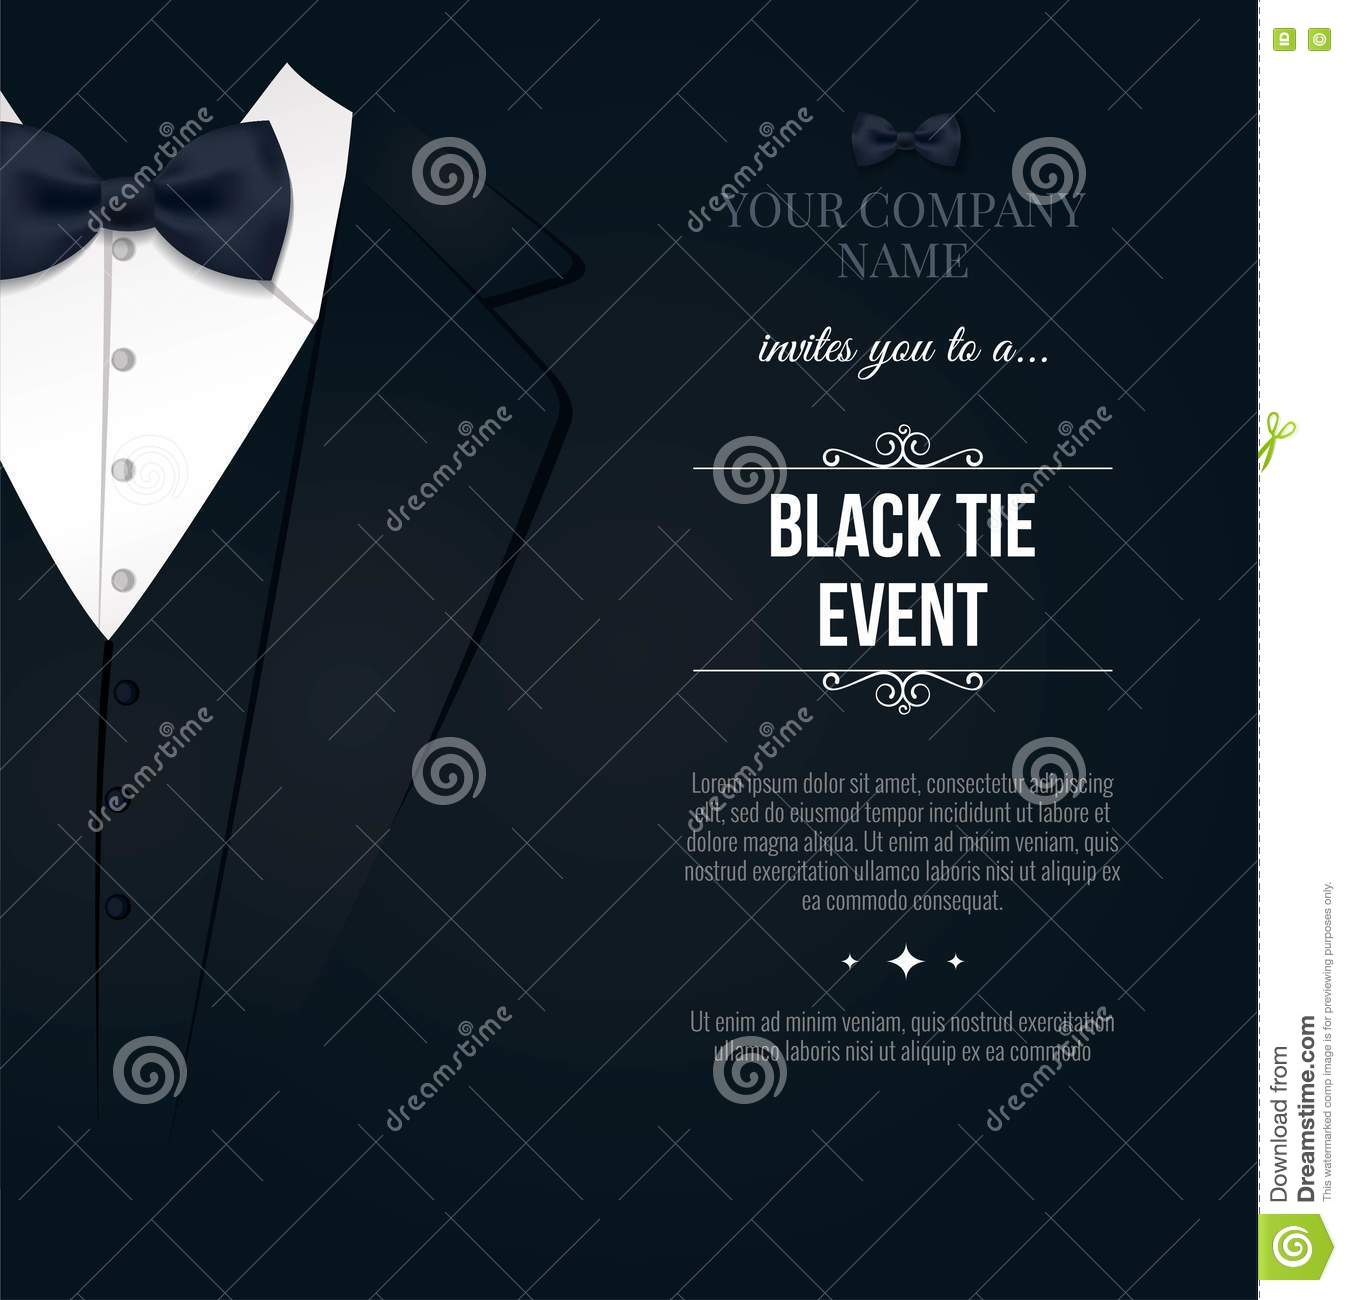 Black tie event invitation stock illustration illustration of gala download black tie event invitation stock illustration illustration of gala 78497026 stopboris Gallery